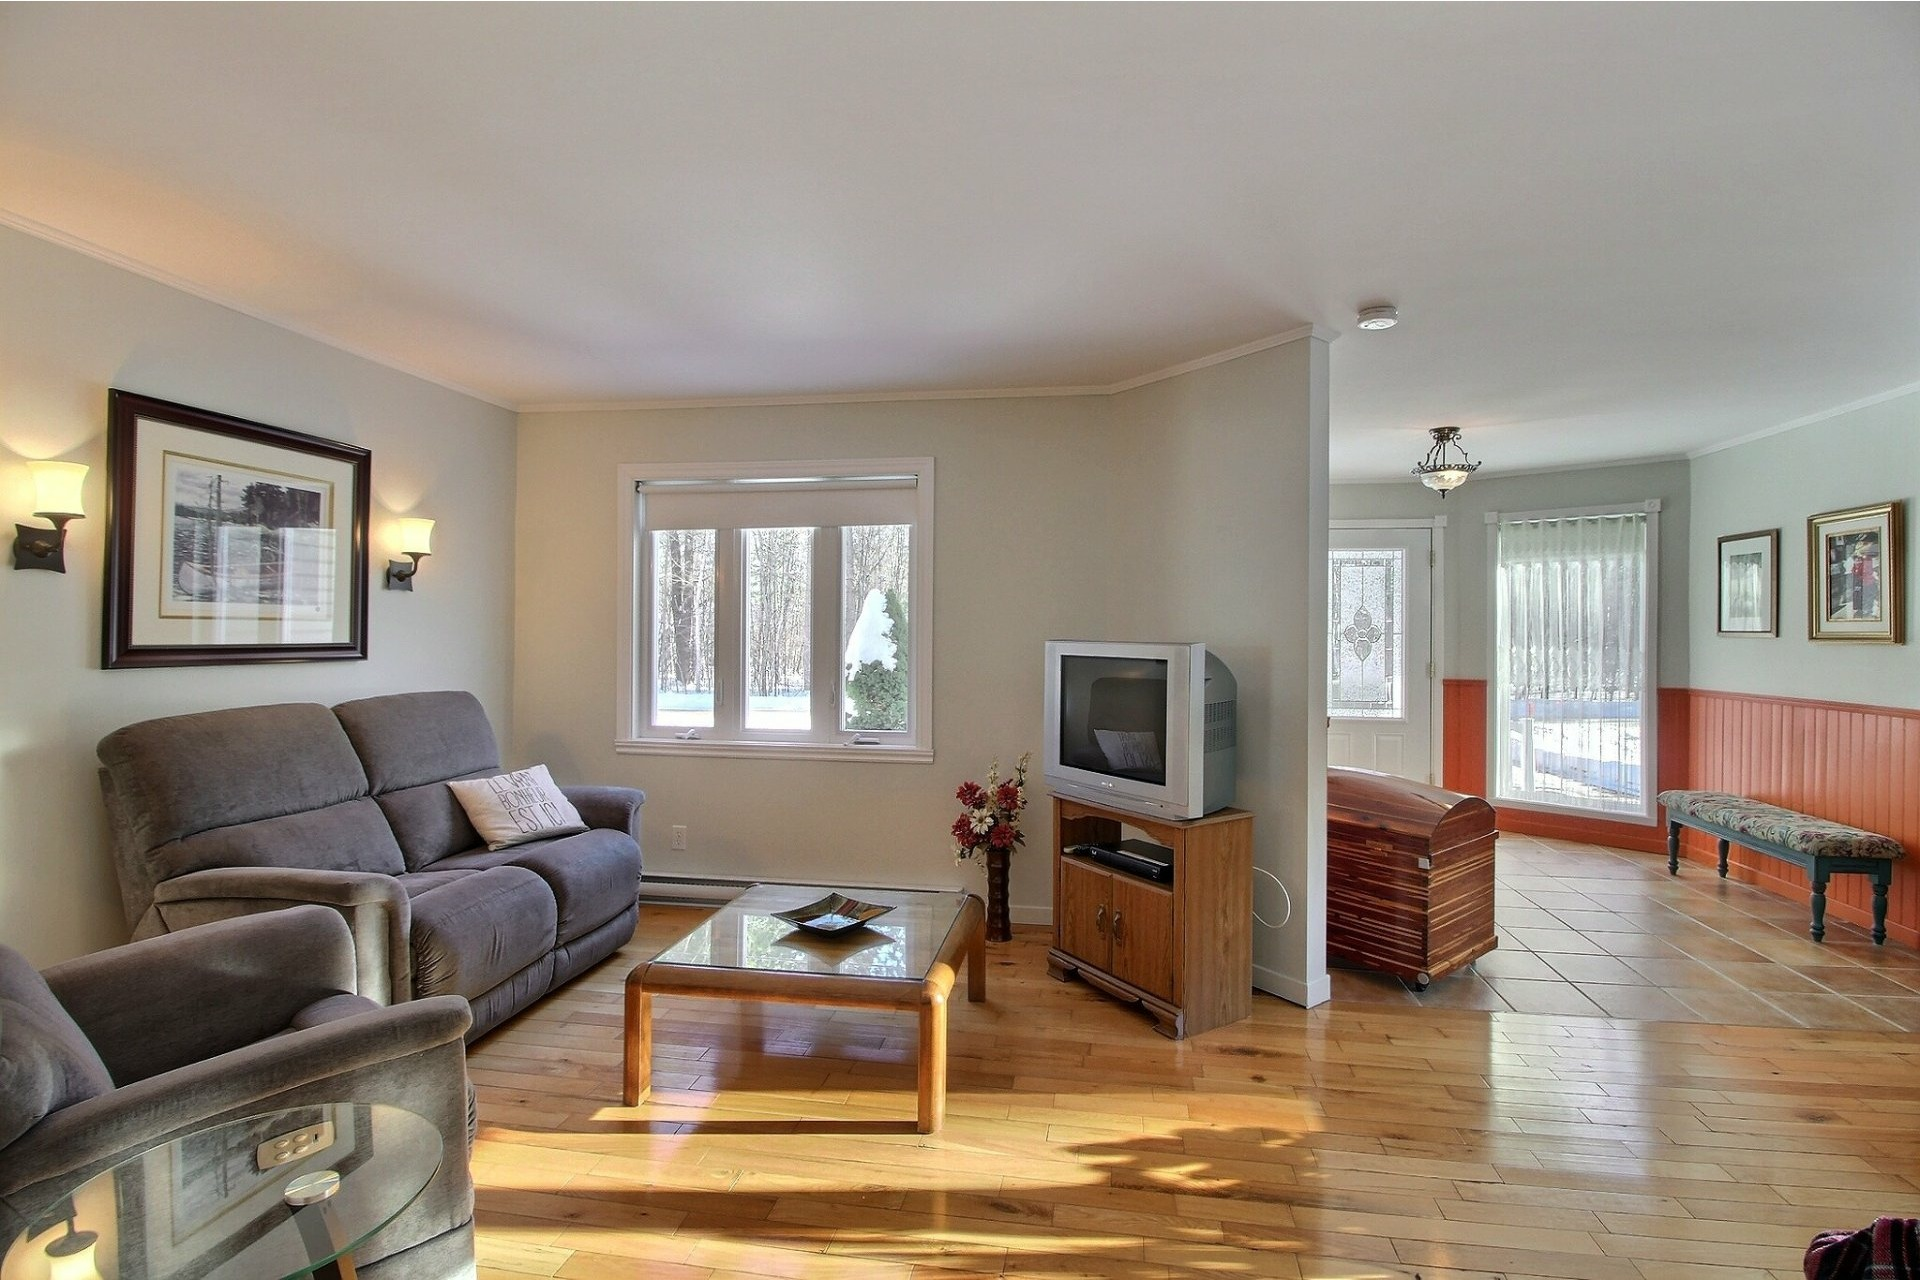 image 5 - House For sale Rawdon - 8 rooms